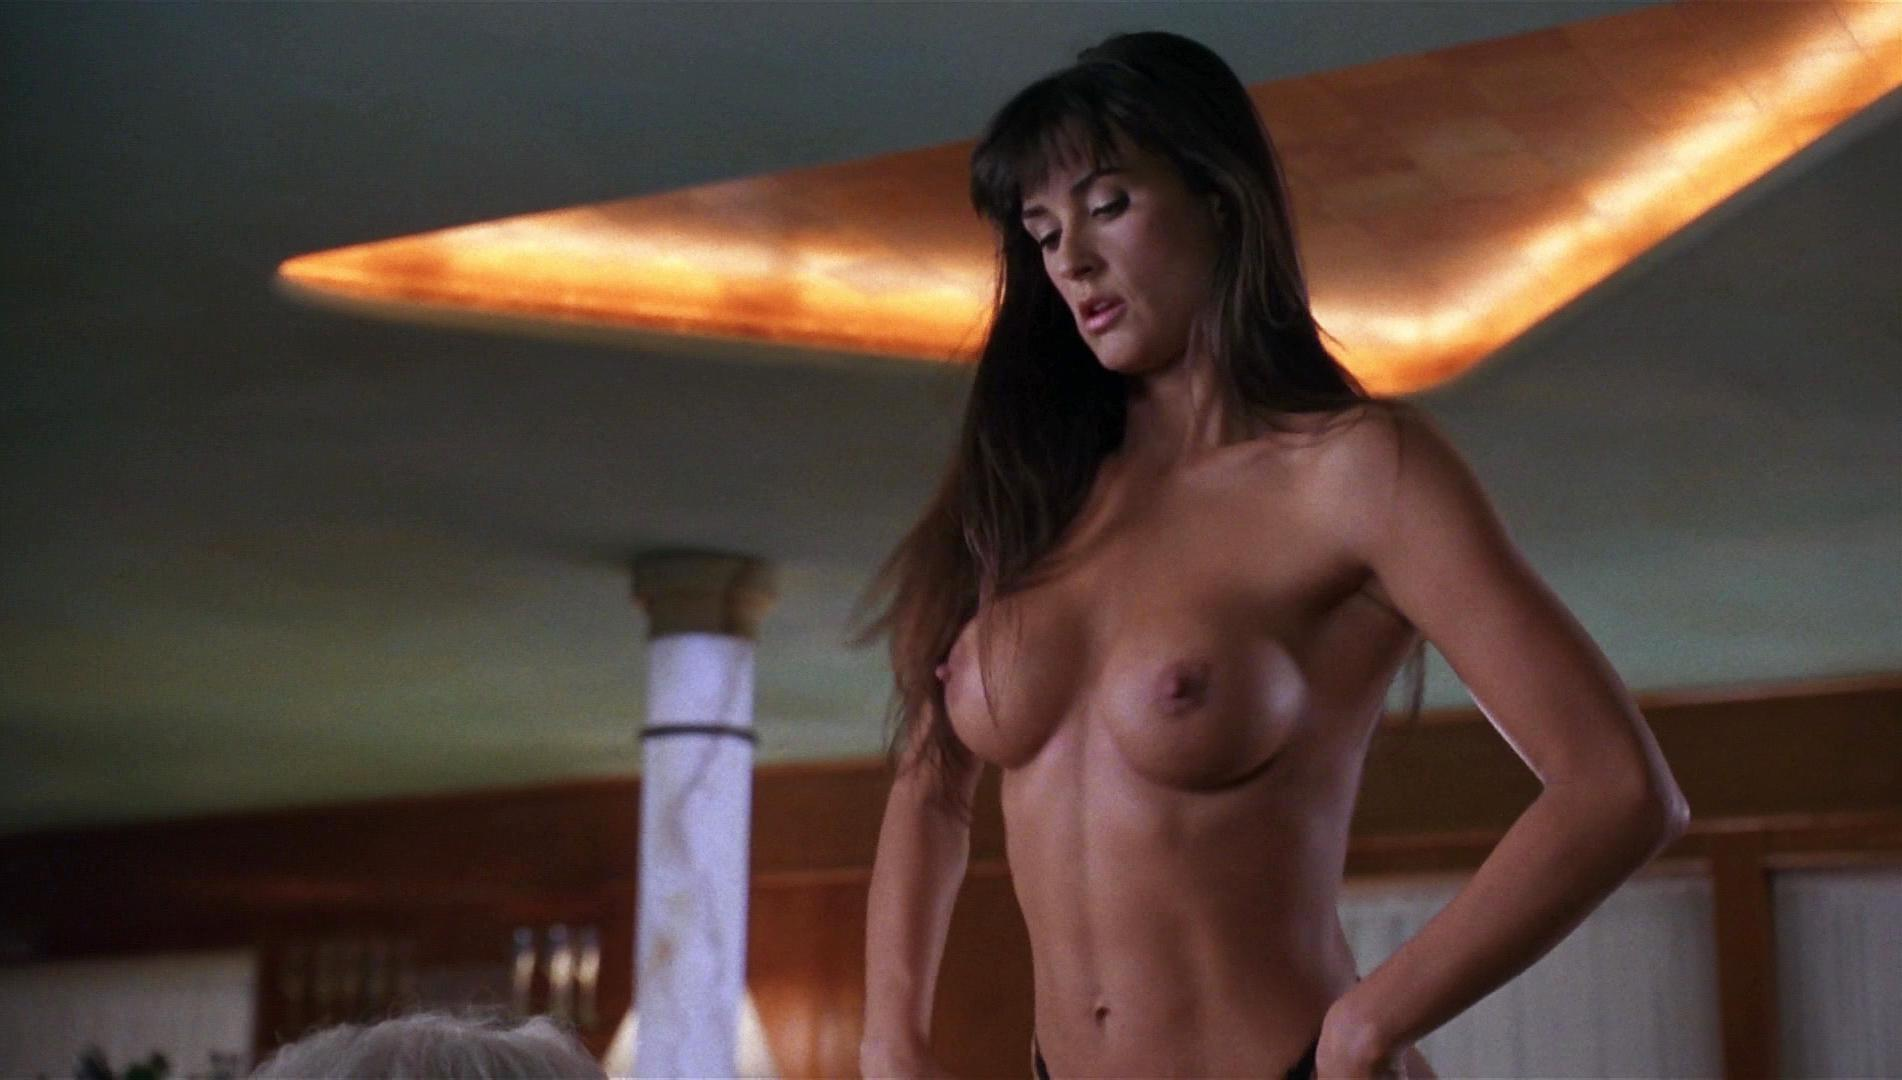 Nude Video Celebs  Demi Moore Nude - Striptease 1996-6774